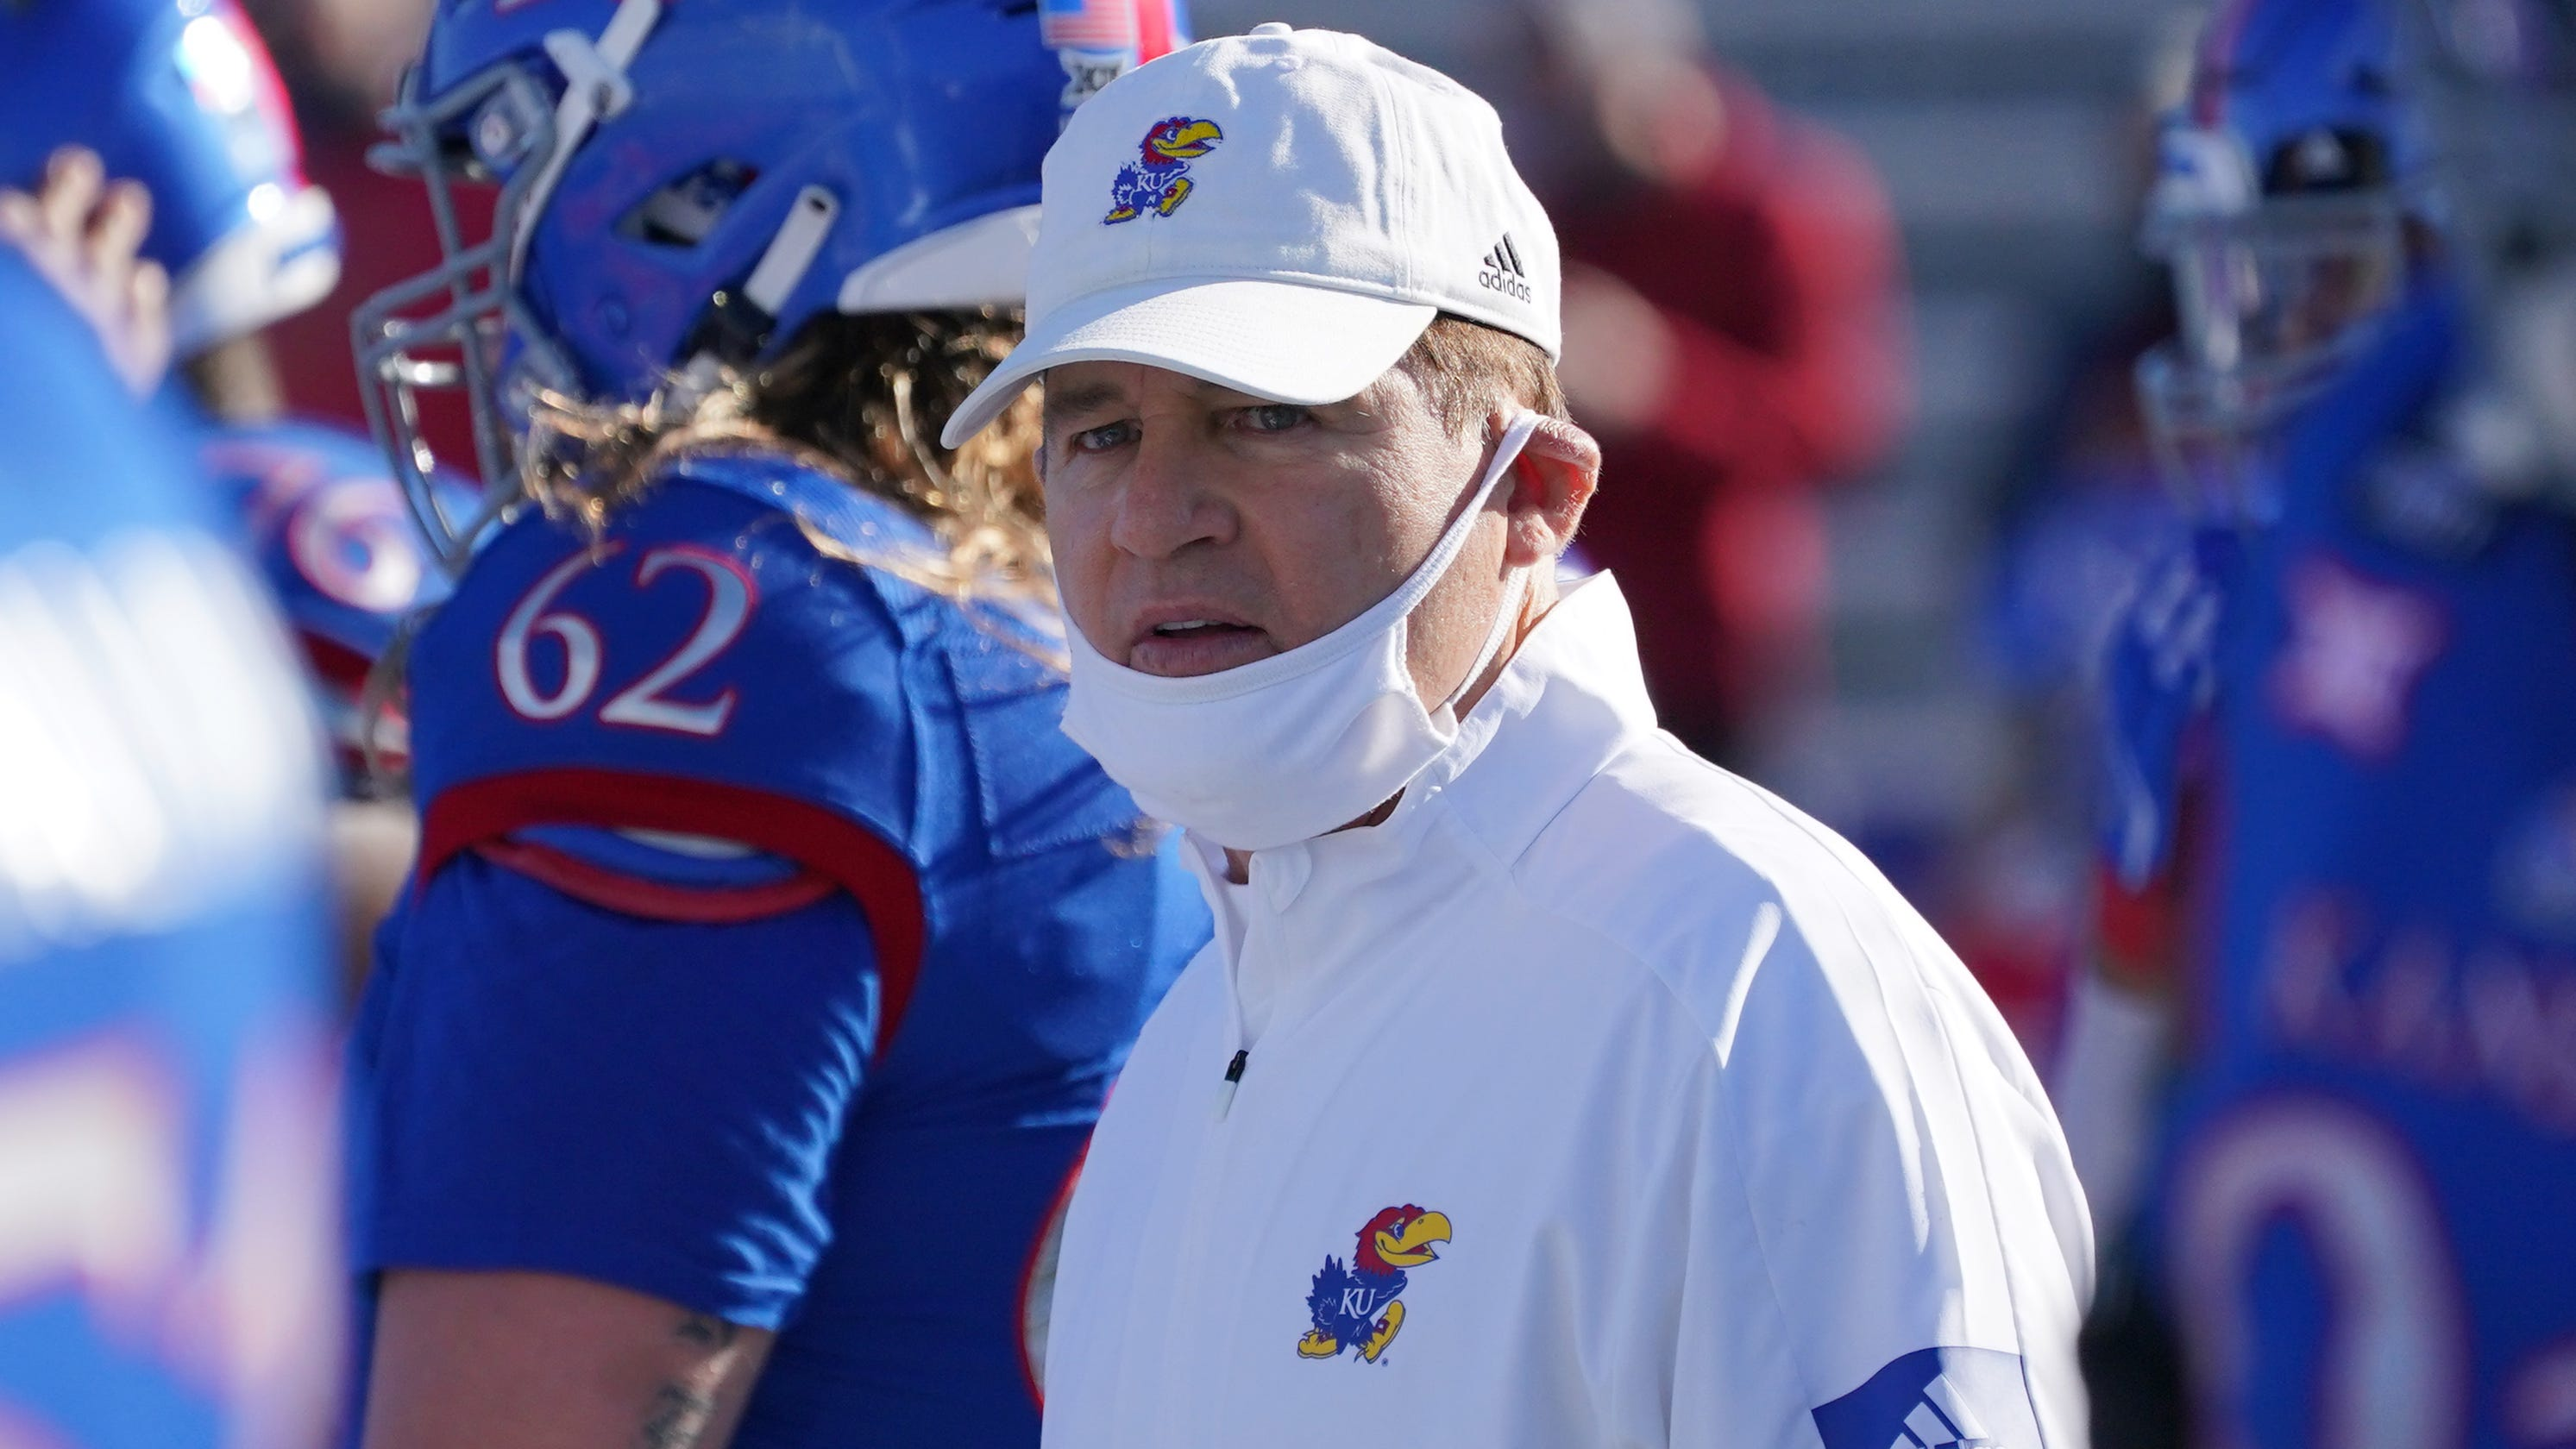 'We did our due diligence:' Kansas pays Les Miles nearly $2 million in settlement deal – USA TODAY